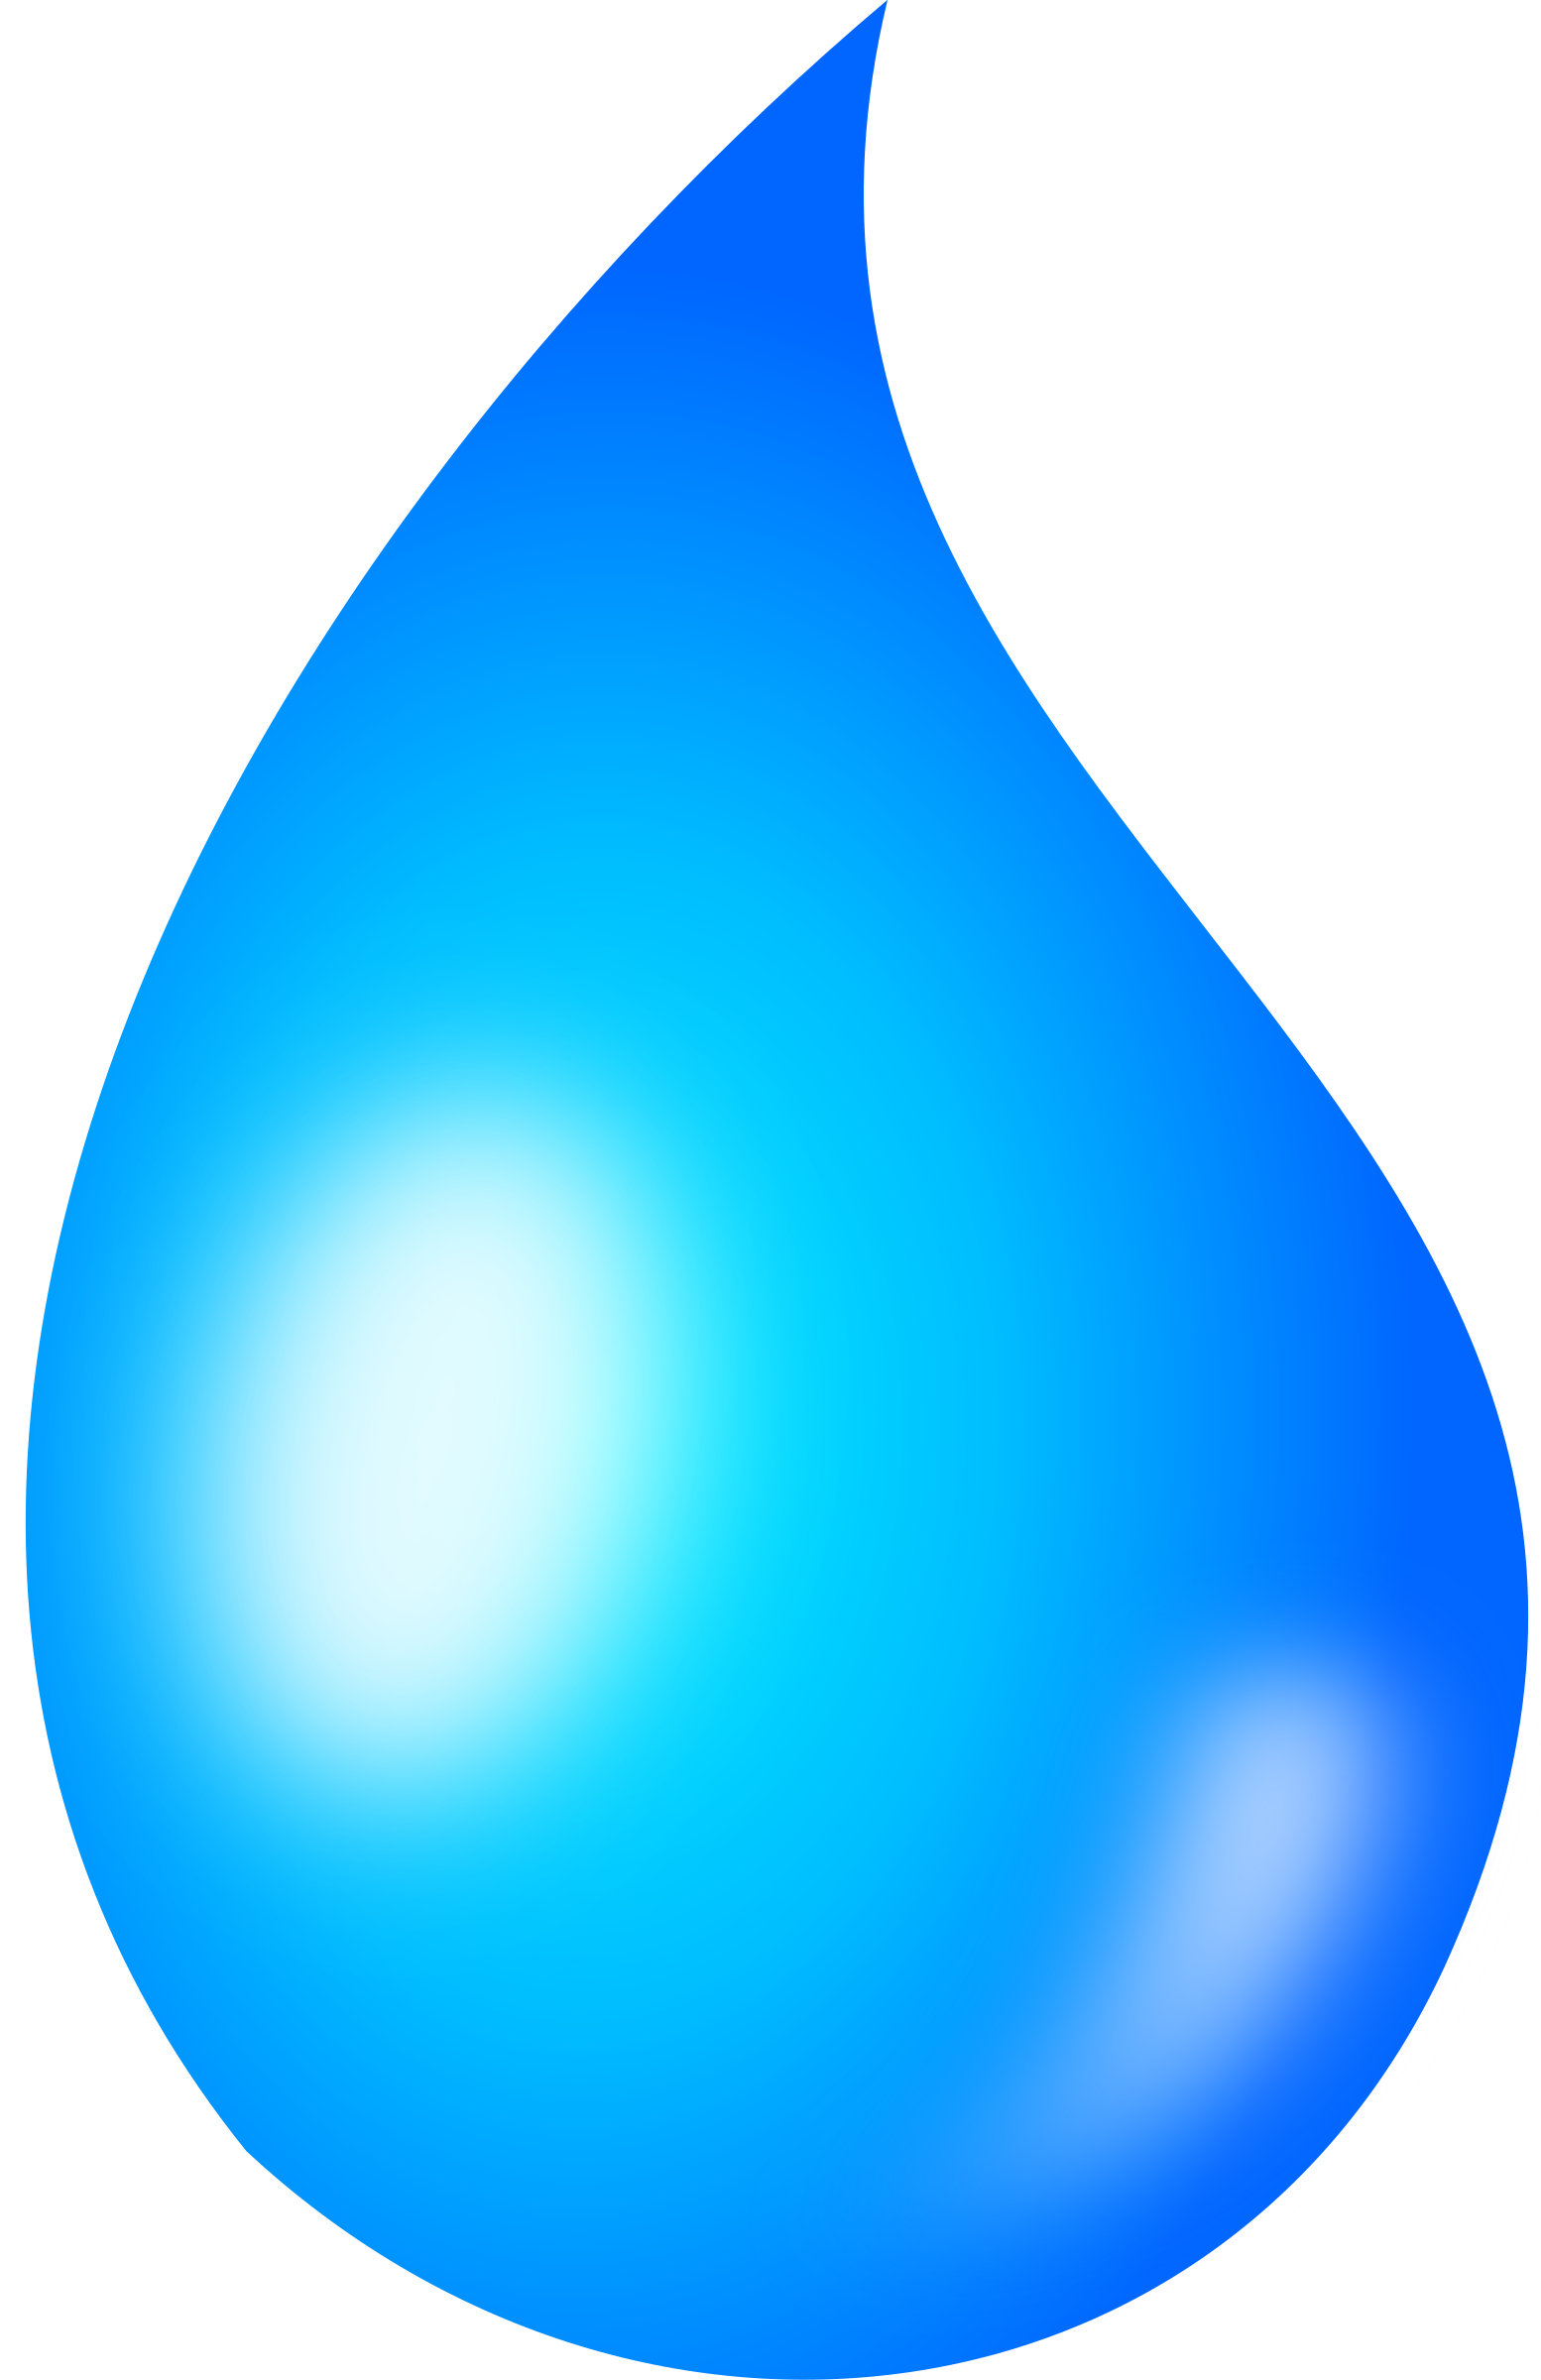 Waterdrop clipart rain droplet #8